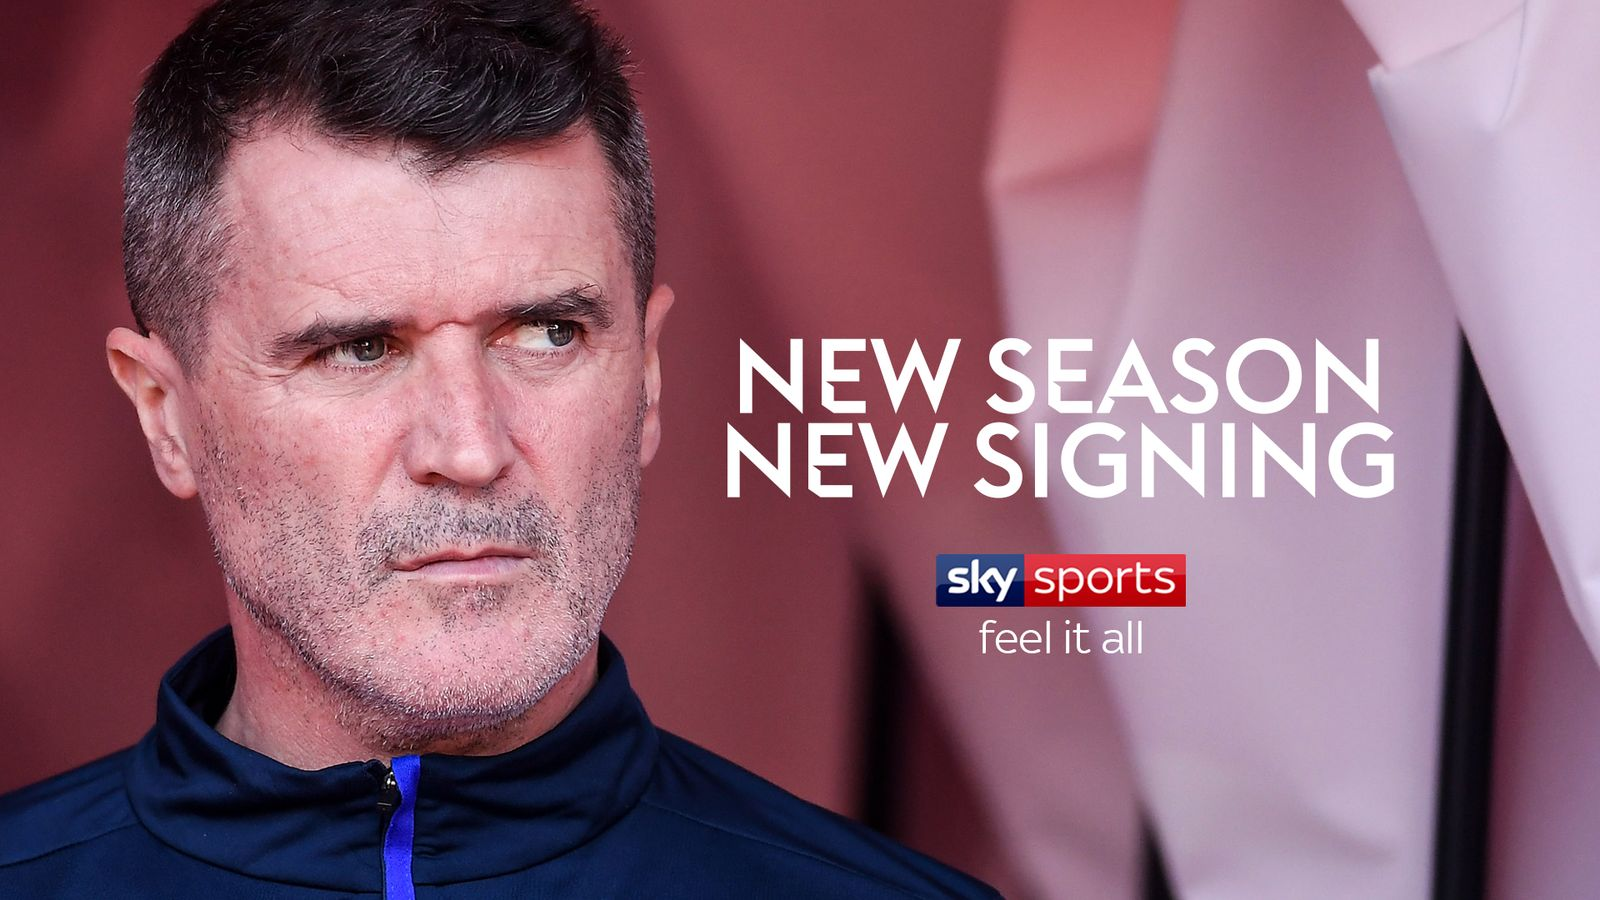 Roy Keane joins Sky Sports for biggest Premier League season yet